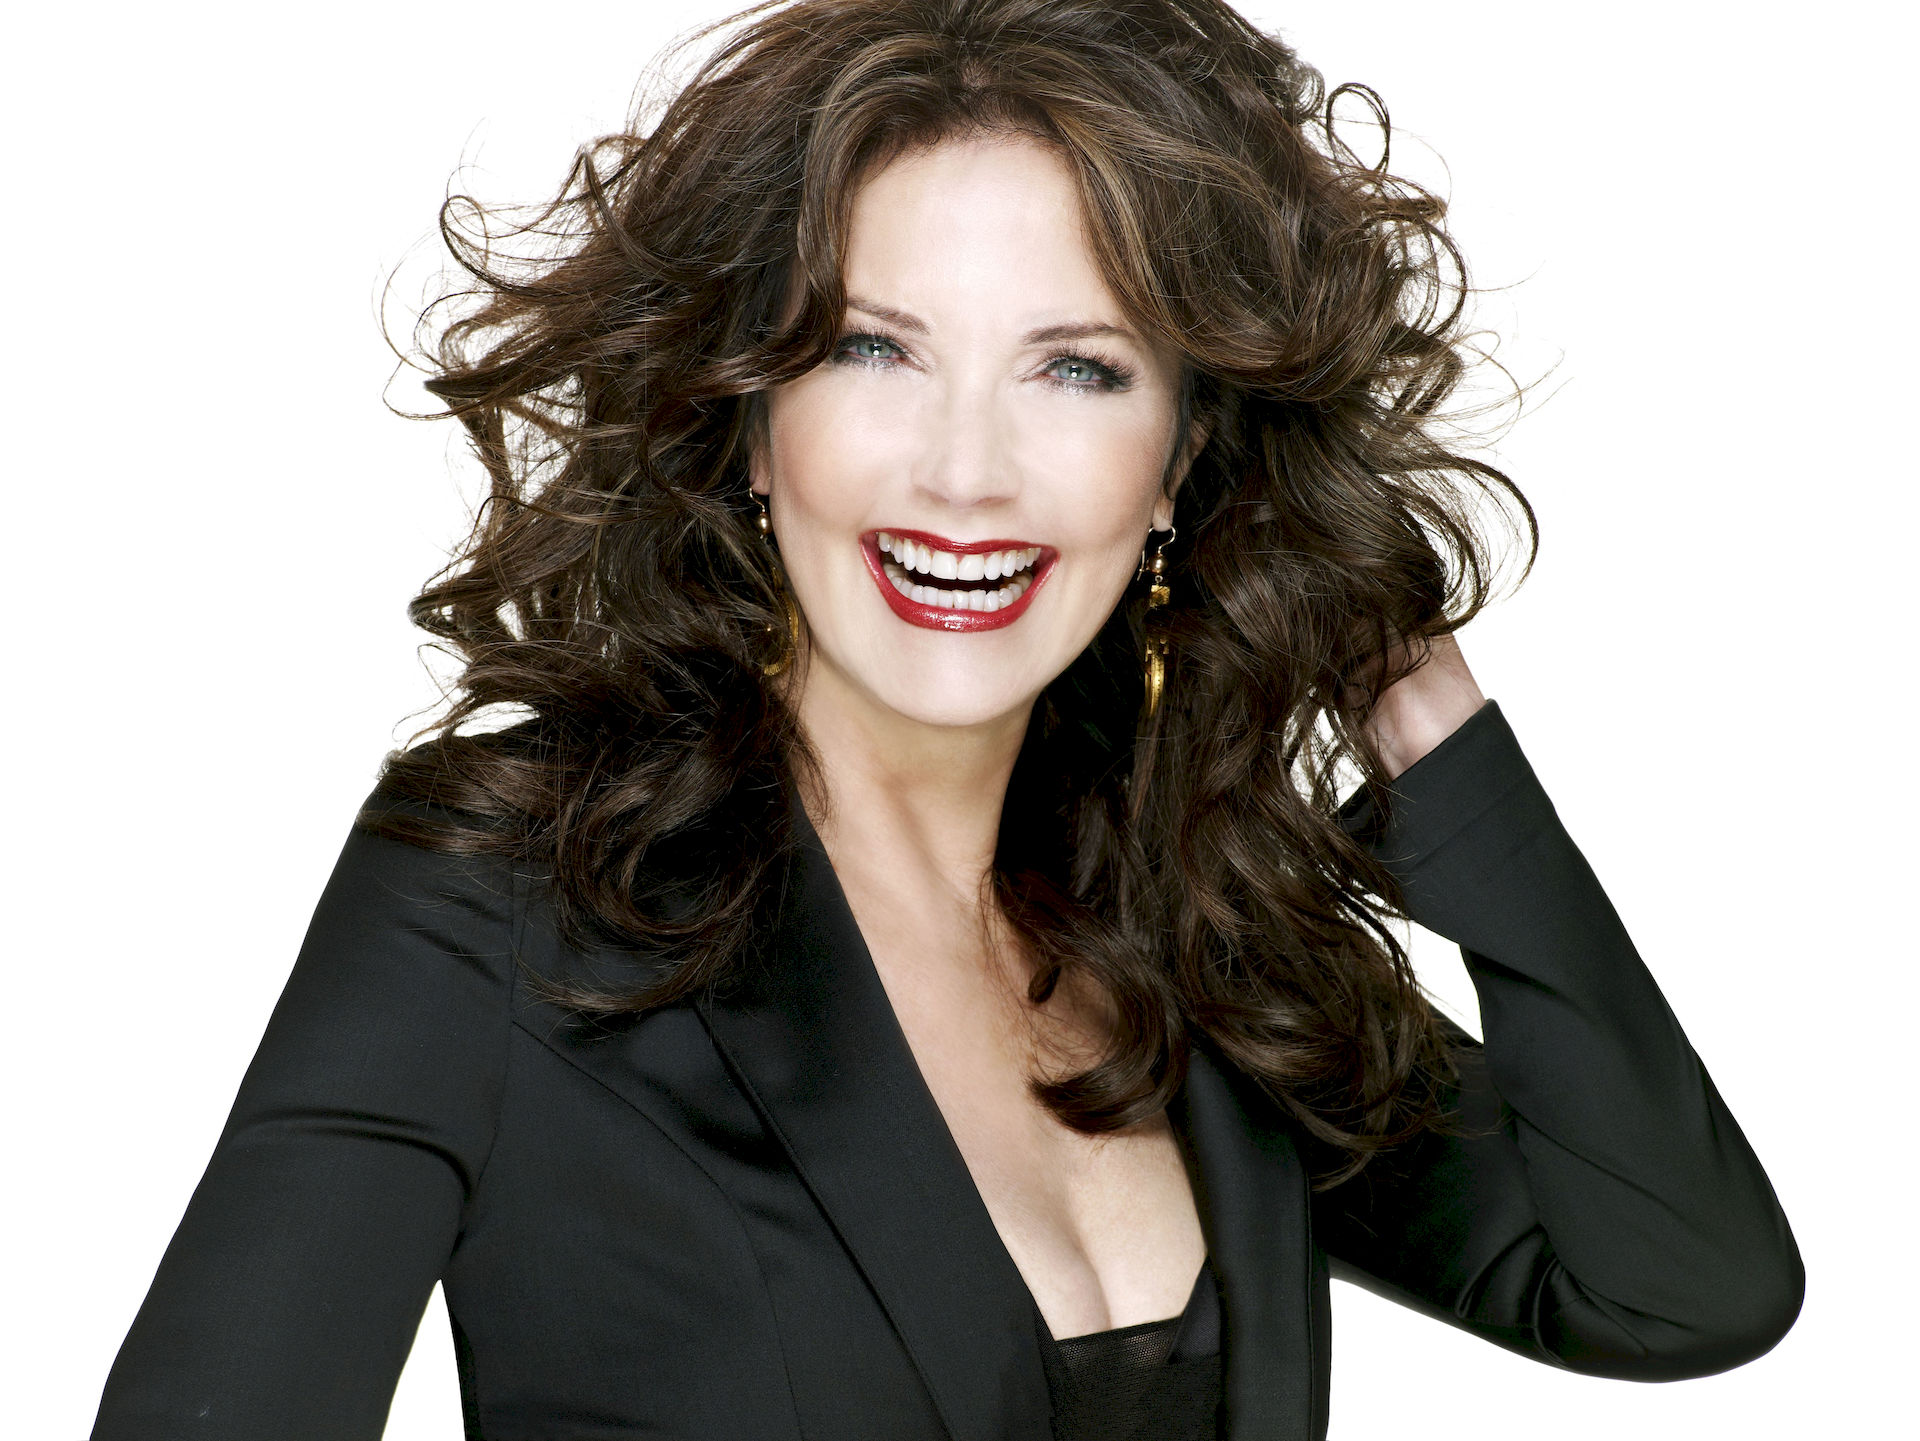 Photo of Lynda Carter: American actress, singer, songwriter and beauty pageant titleholder